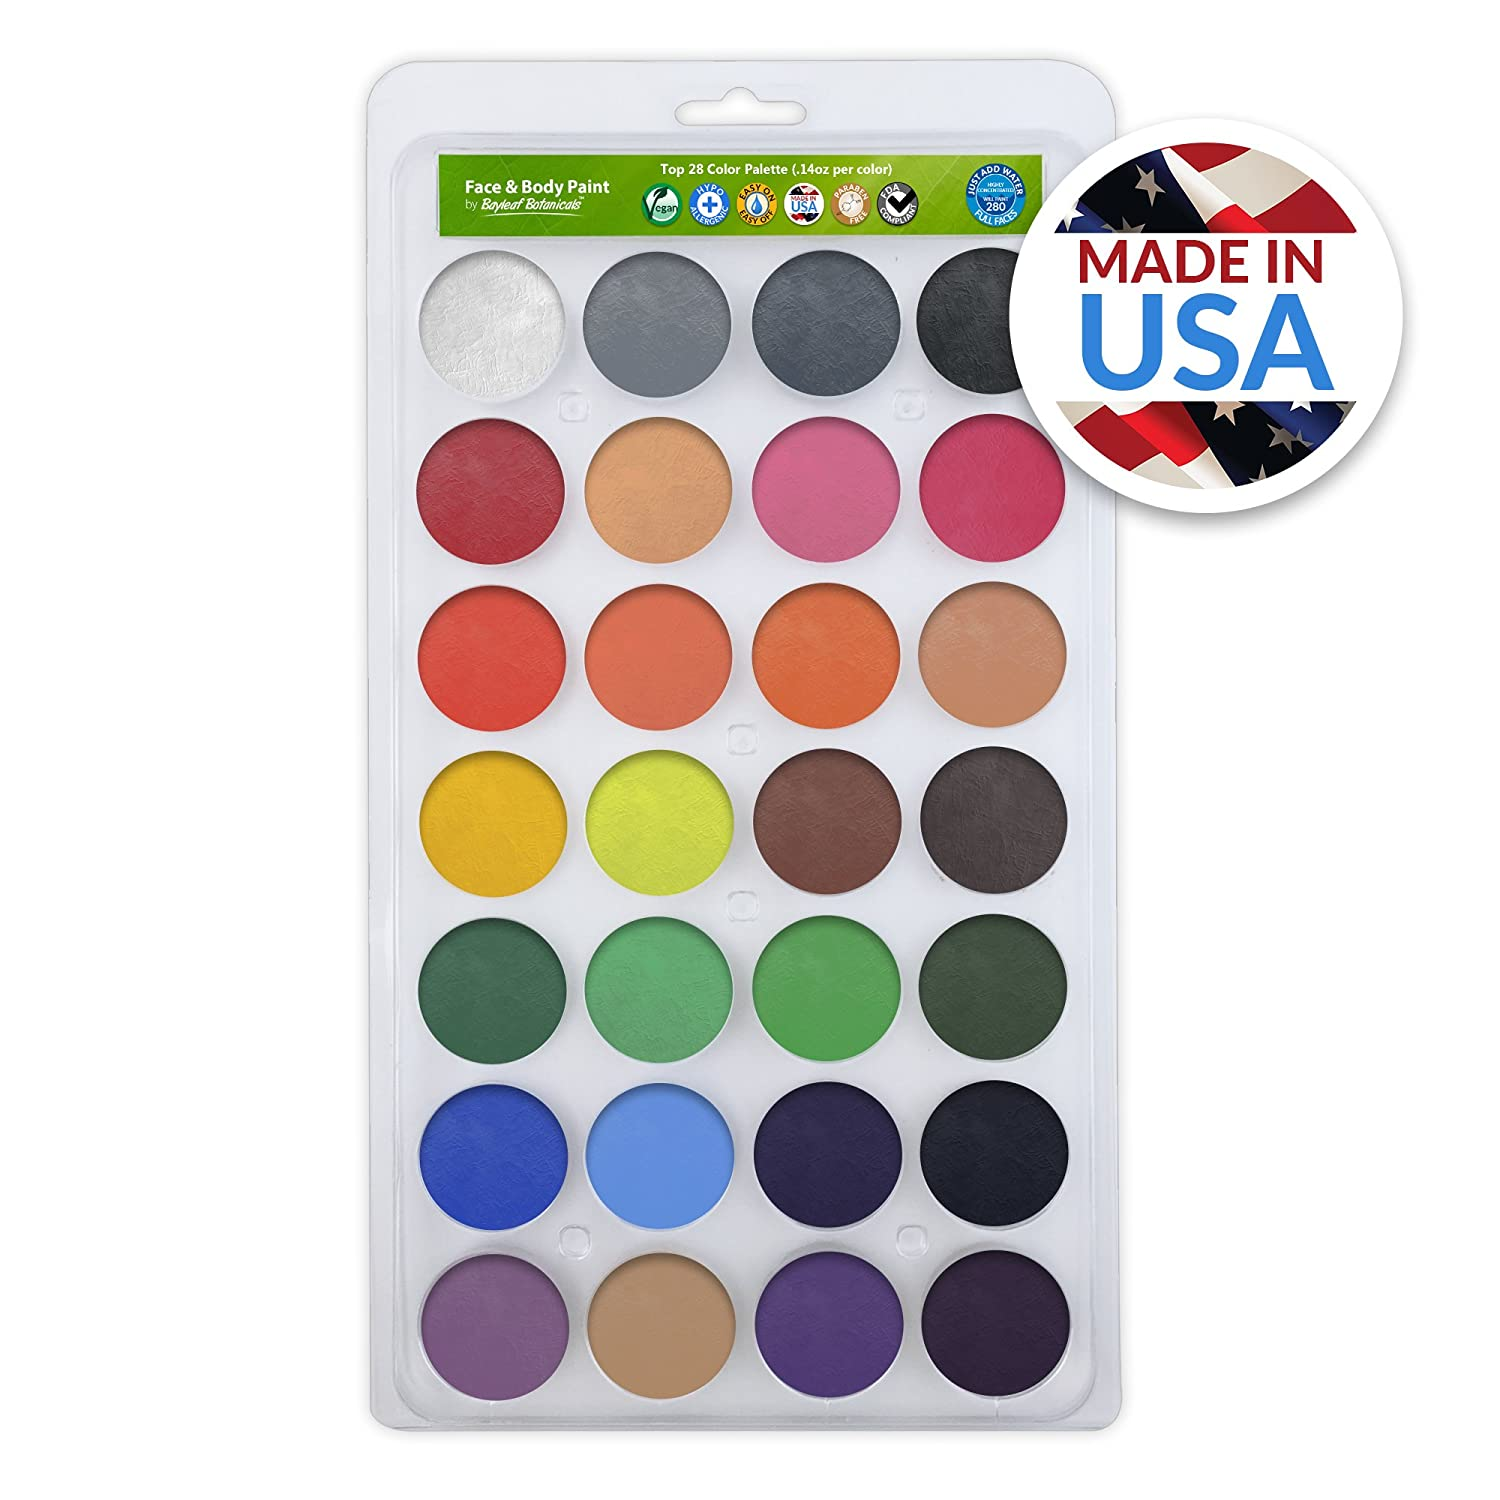 Amazon vegan face paint kit top 28 color palette face amazon vegan face paint kit top 28 color palette face paints 280 full faces volume painting made in the usa hypo allergenic paraben free sciox Gallery